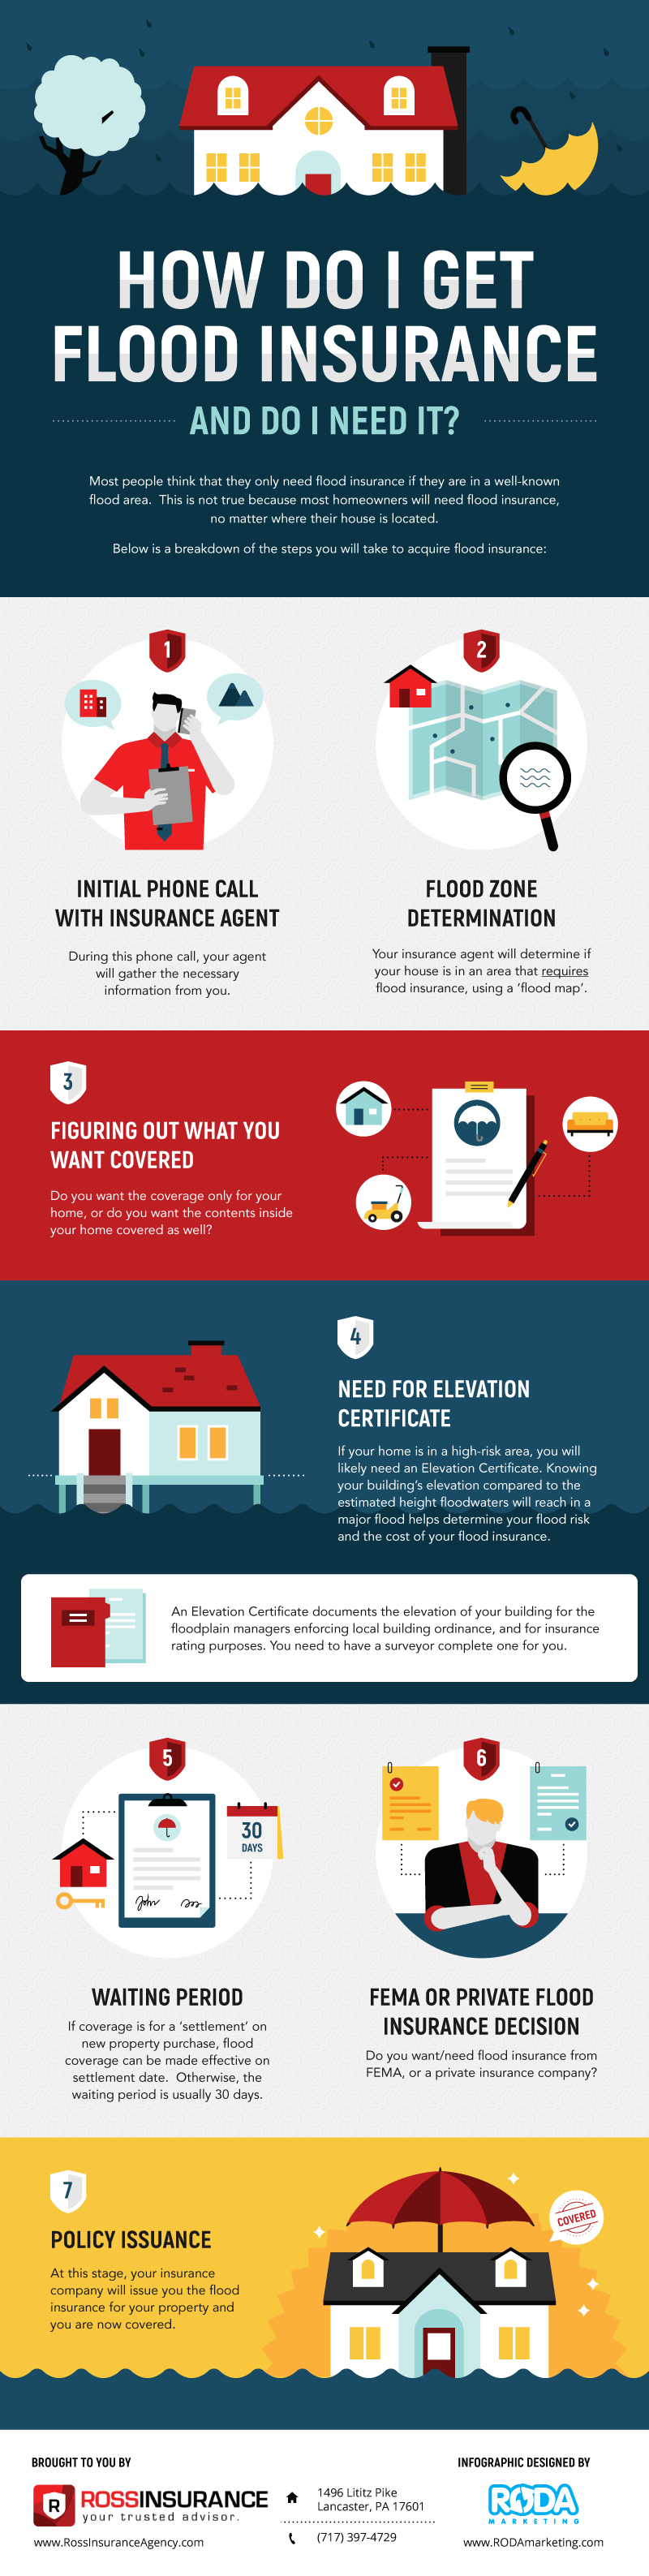 RossInsuranceAgency.com_Infographic_April2020